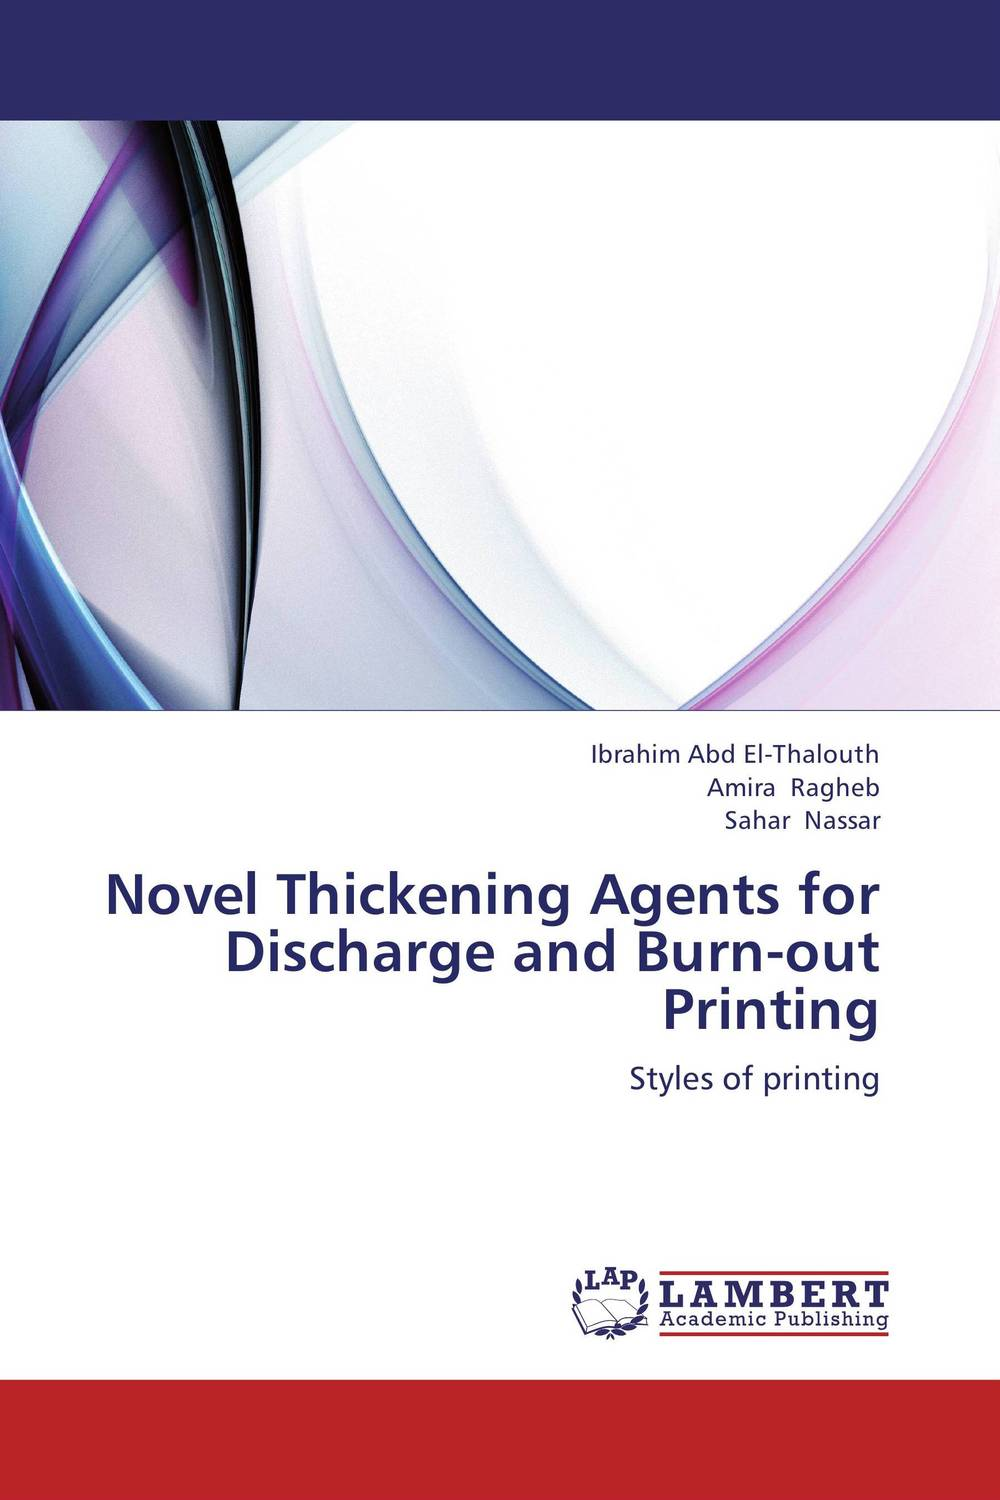 Novel Thickening Agents for Discharge and Burn-out Printing agents of mayhem steelbook edition [ps4]